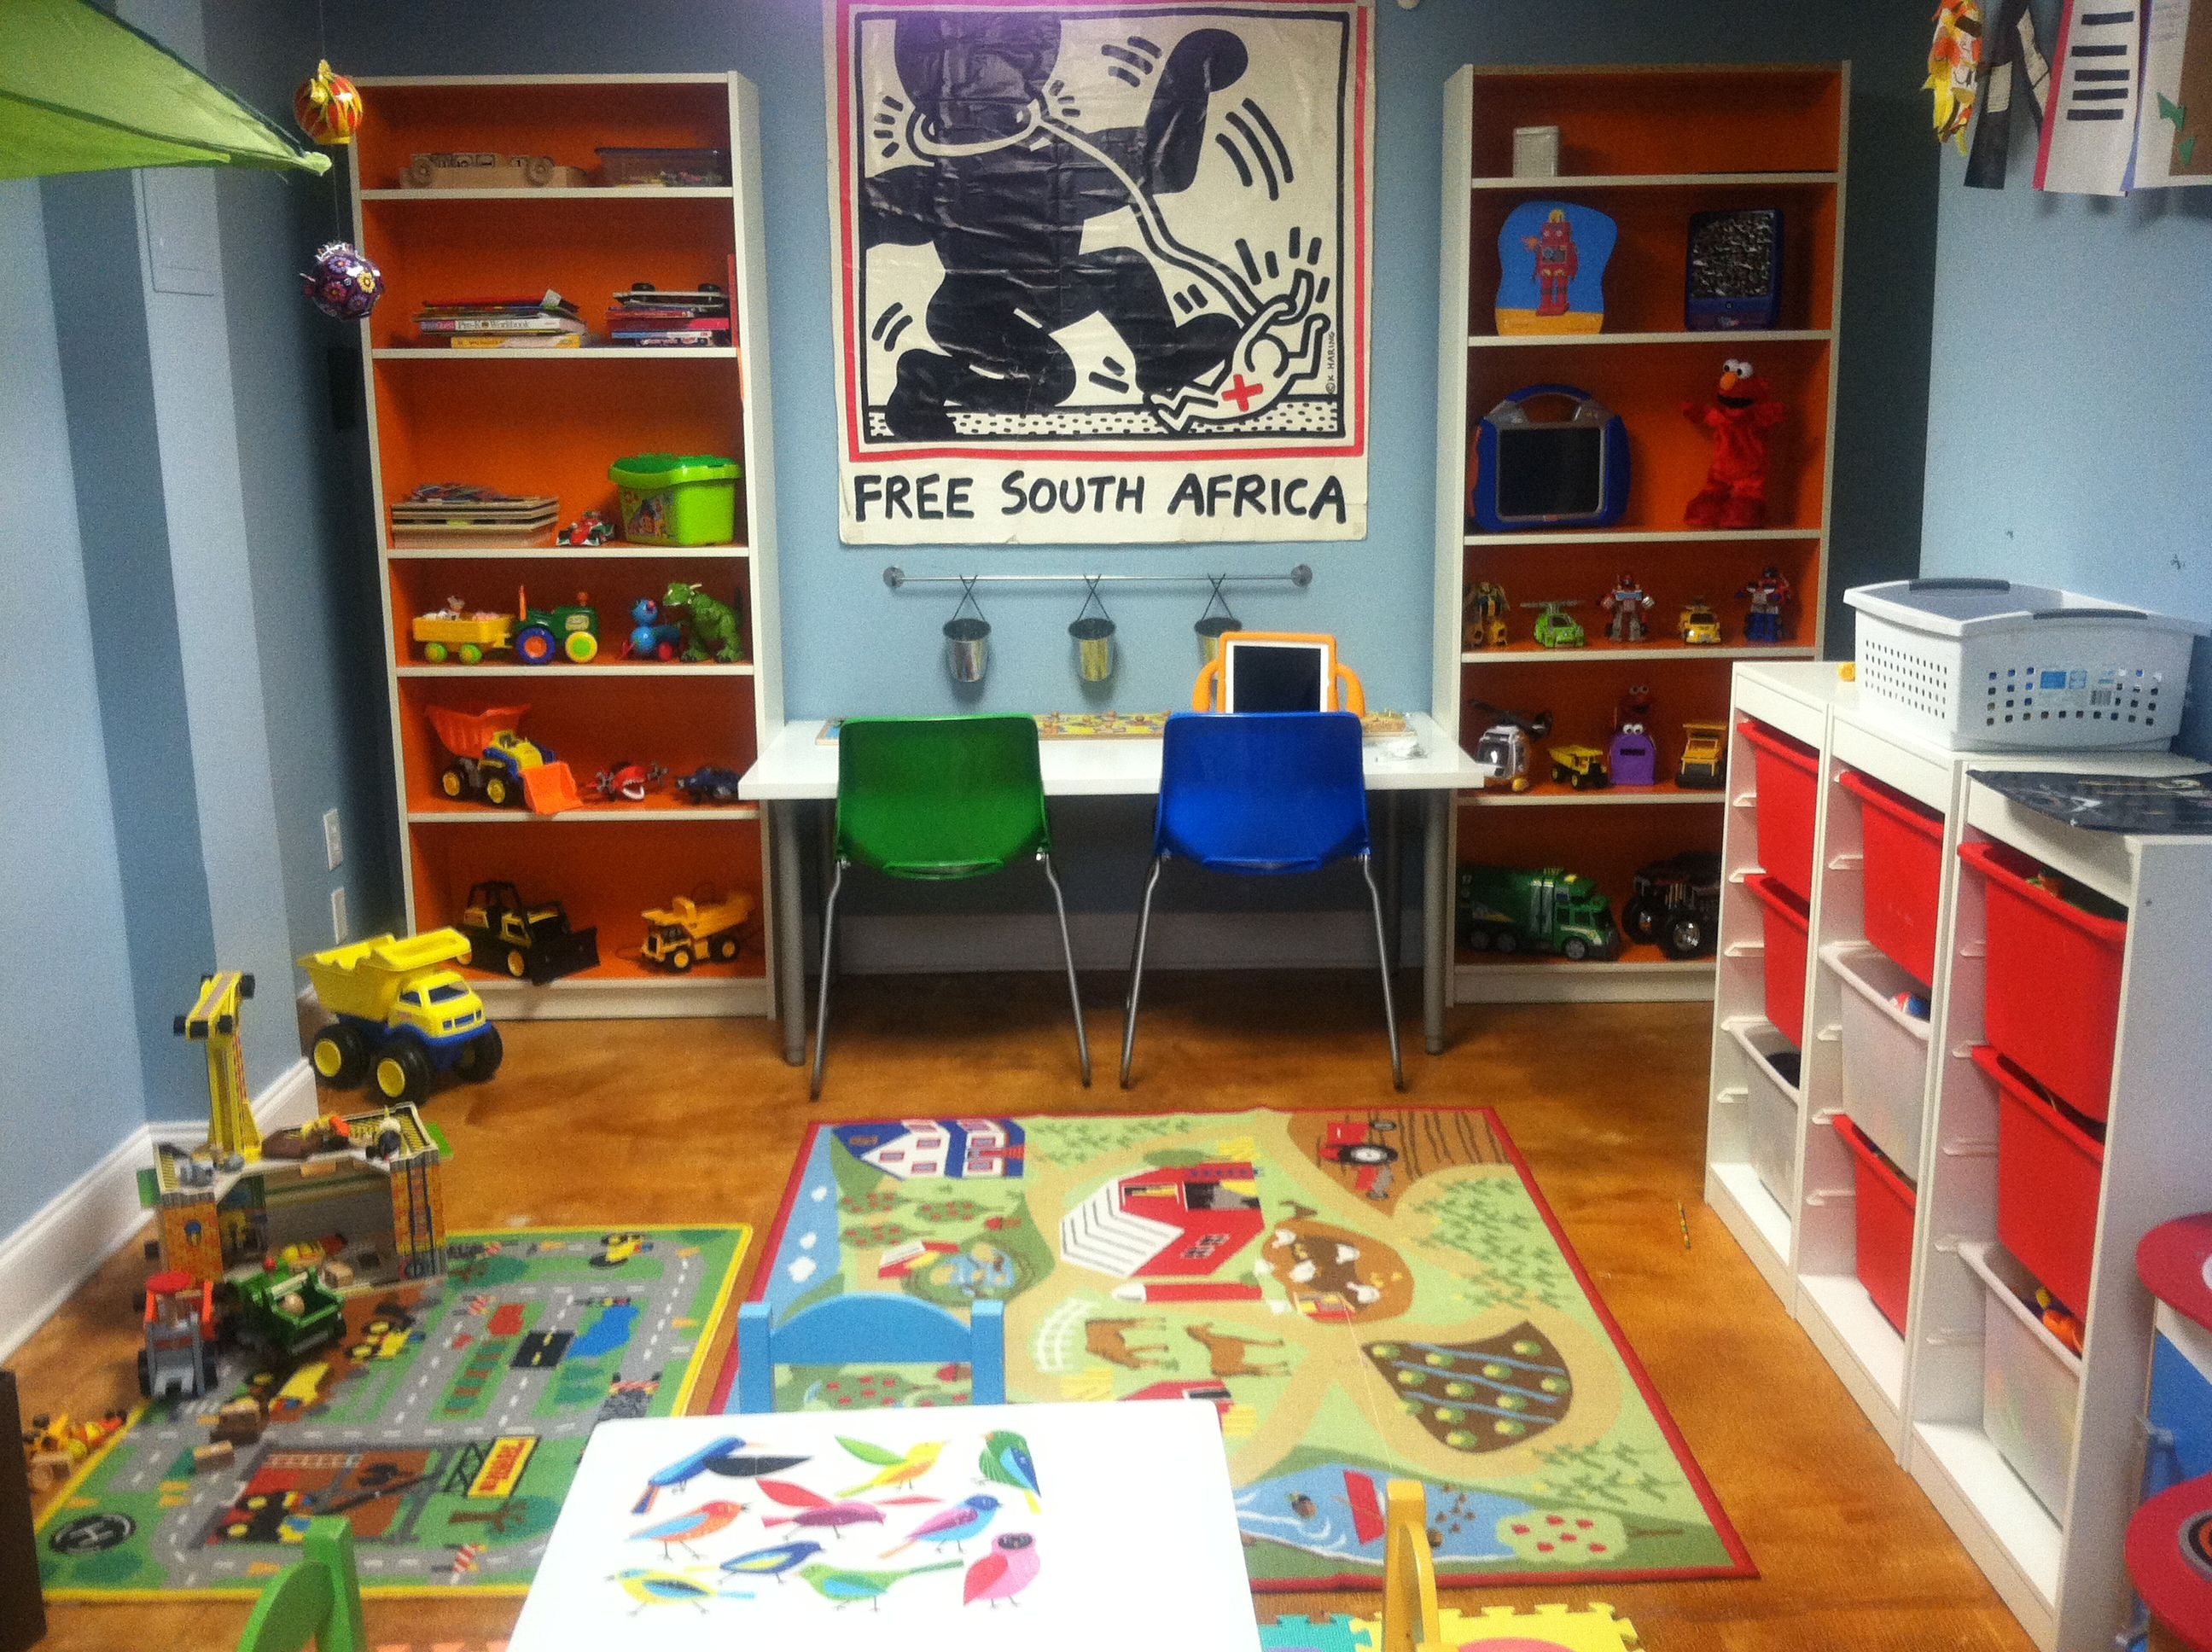 #playroom #kidland I fell in love with these new limited edition billy book cases at IKEA. I put a work surface with adjustable legs to grow with the kids in between the book cases. I am still committed to my Keith Haring poster that is, I guess you could call it Vintage original from the mid 80's- salvaged from my father's bachelor pad. I am pleased with its incorporation into the playroom.